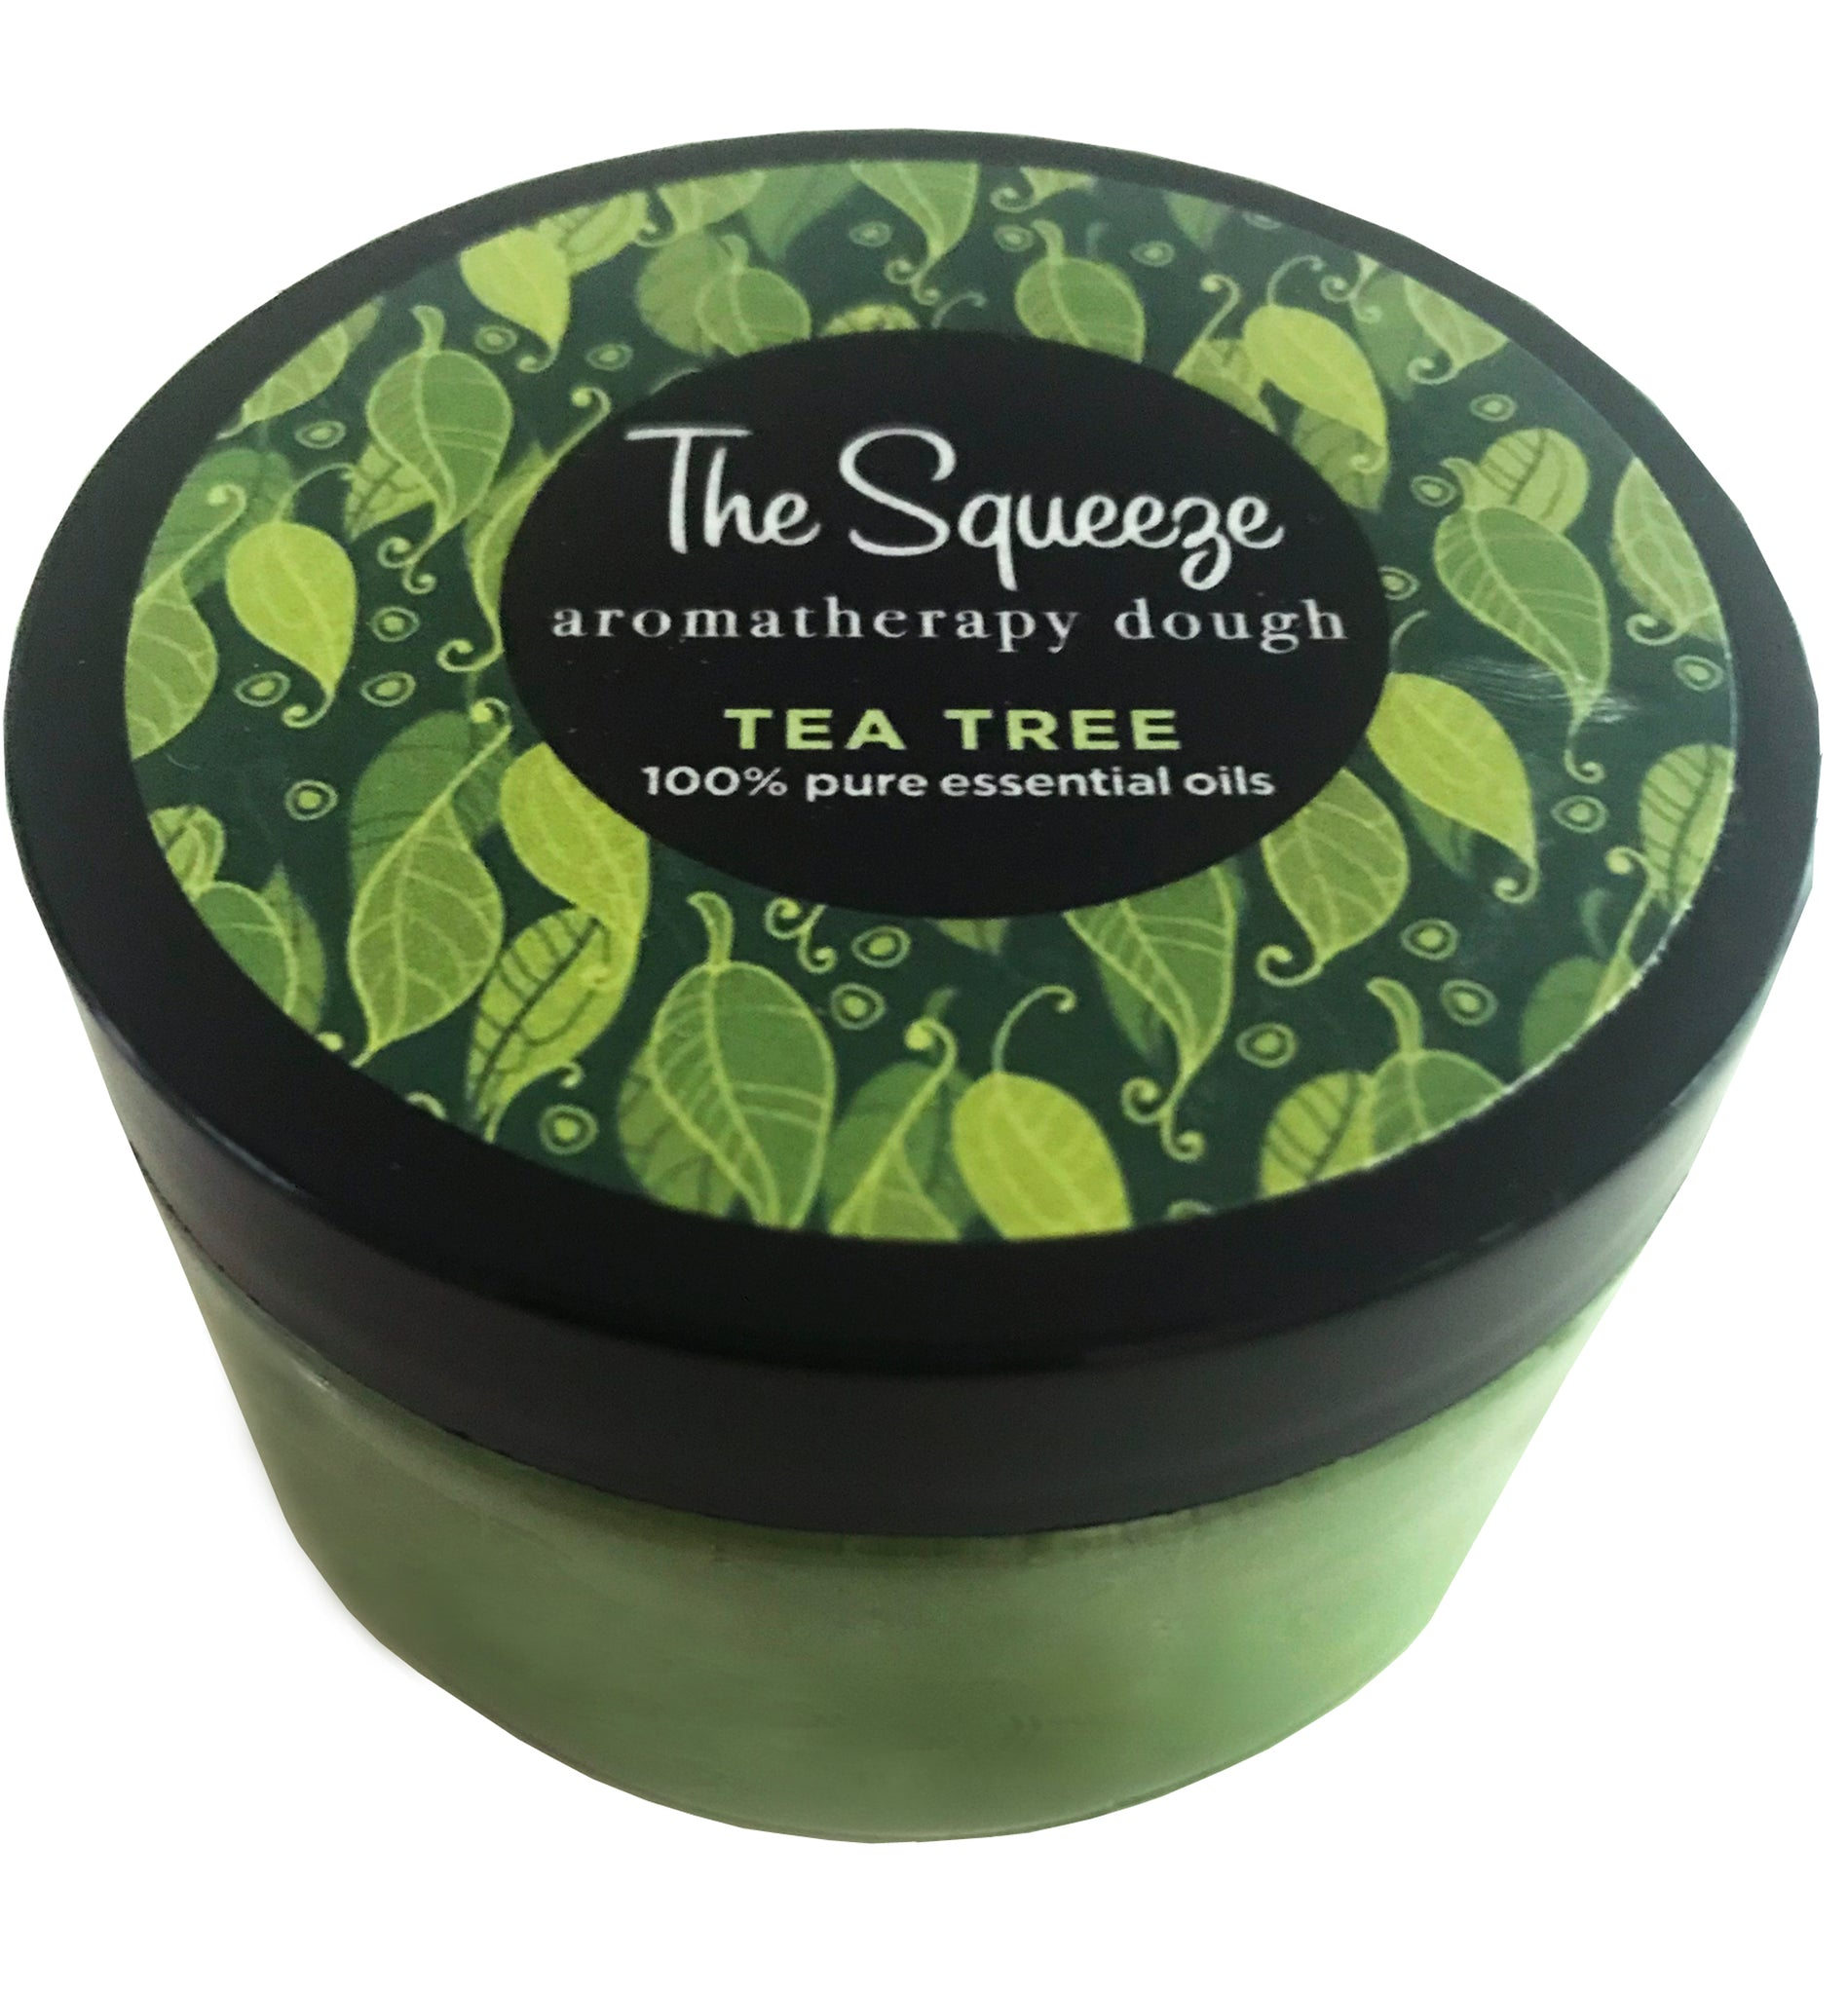 The Squeeze - Tea Tree 100% essential oil stress relief dough for self care, aromatherapy stress ball, stress relief FREE SHIPPING